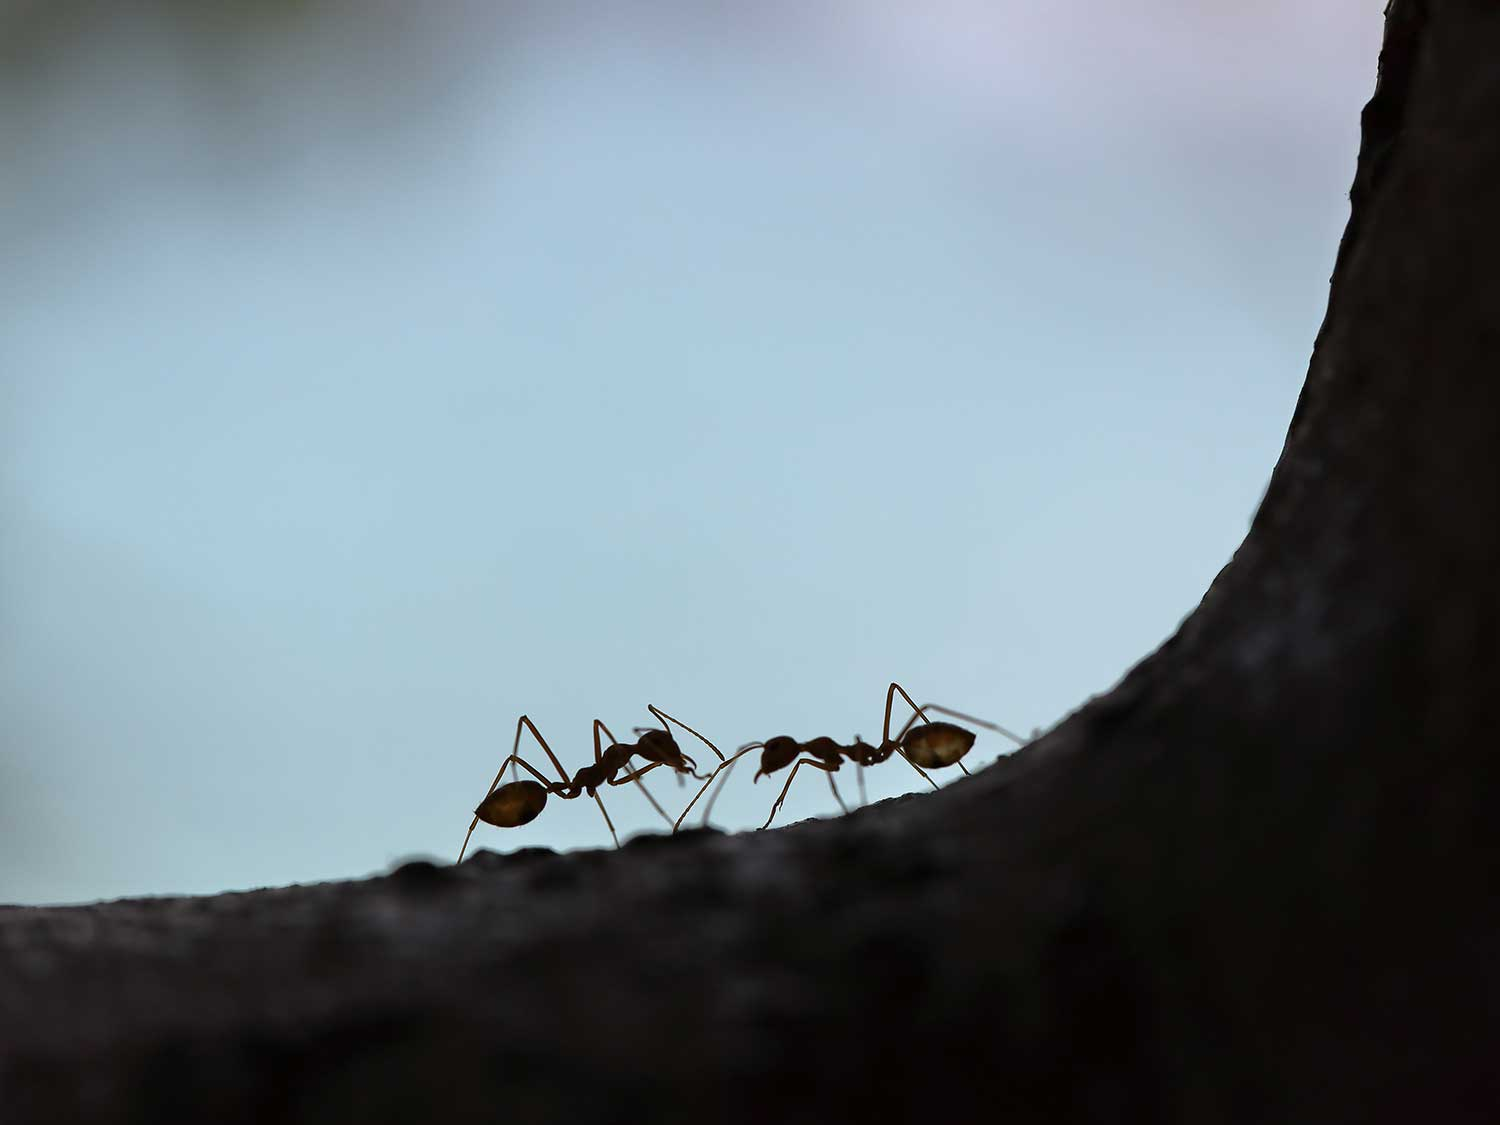 Ants climbing up anthill